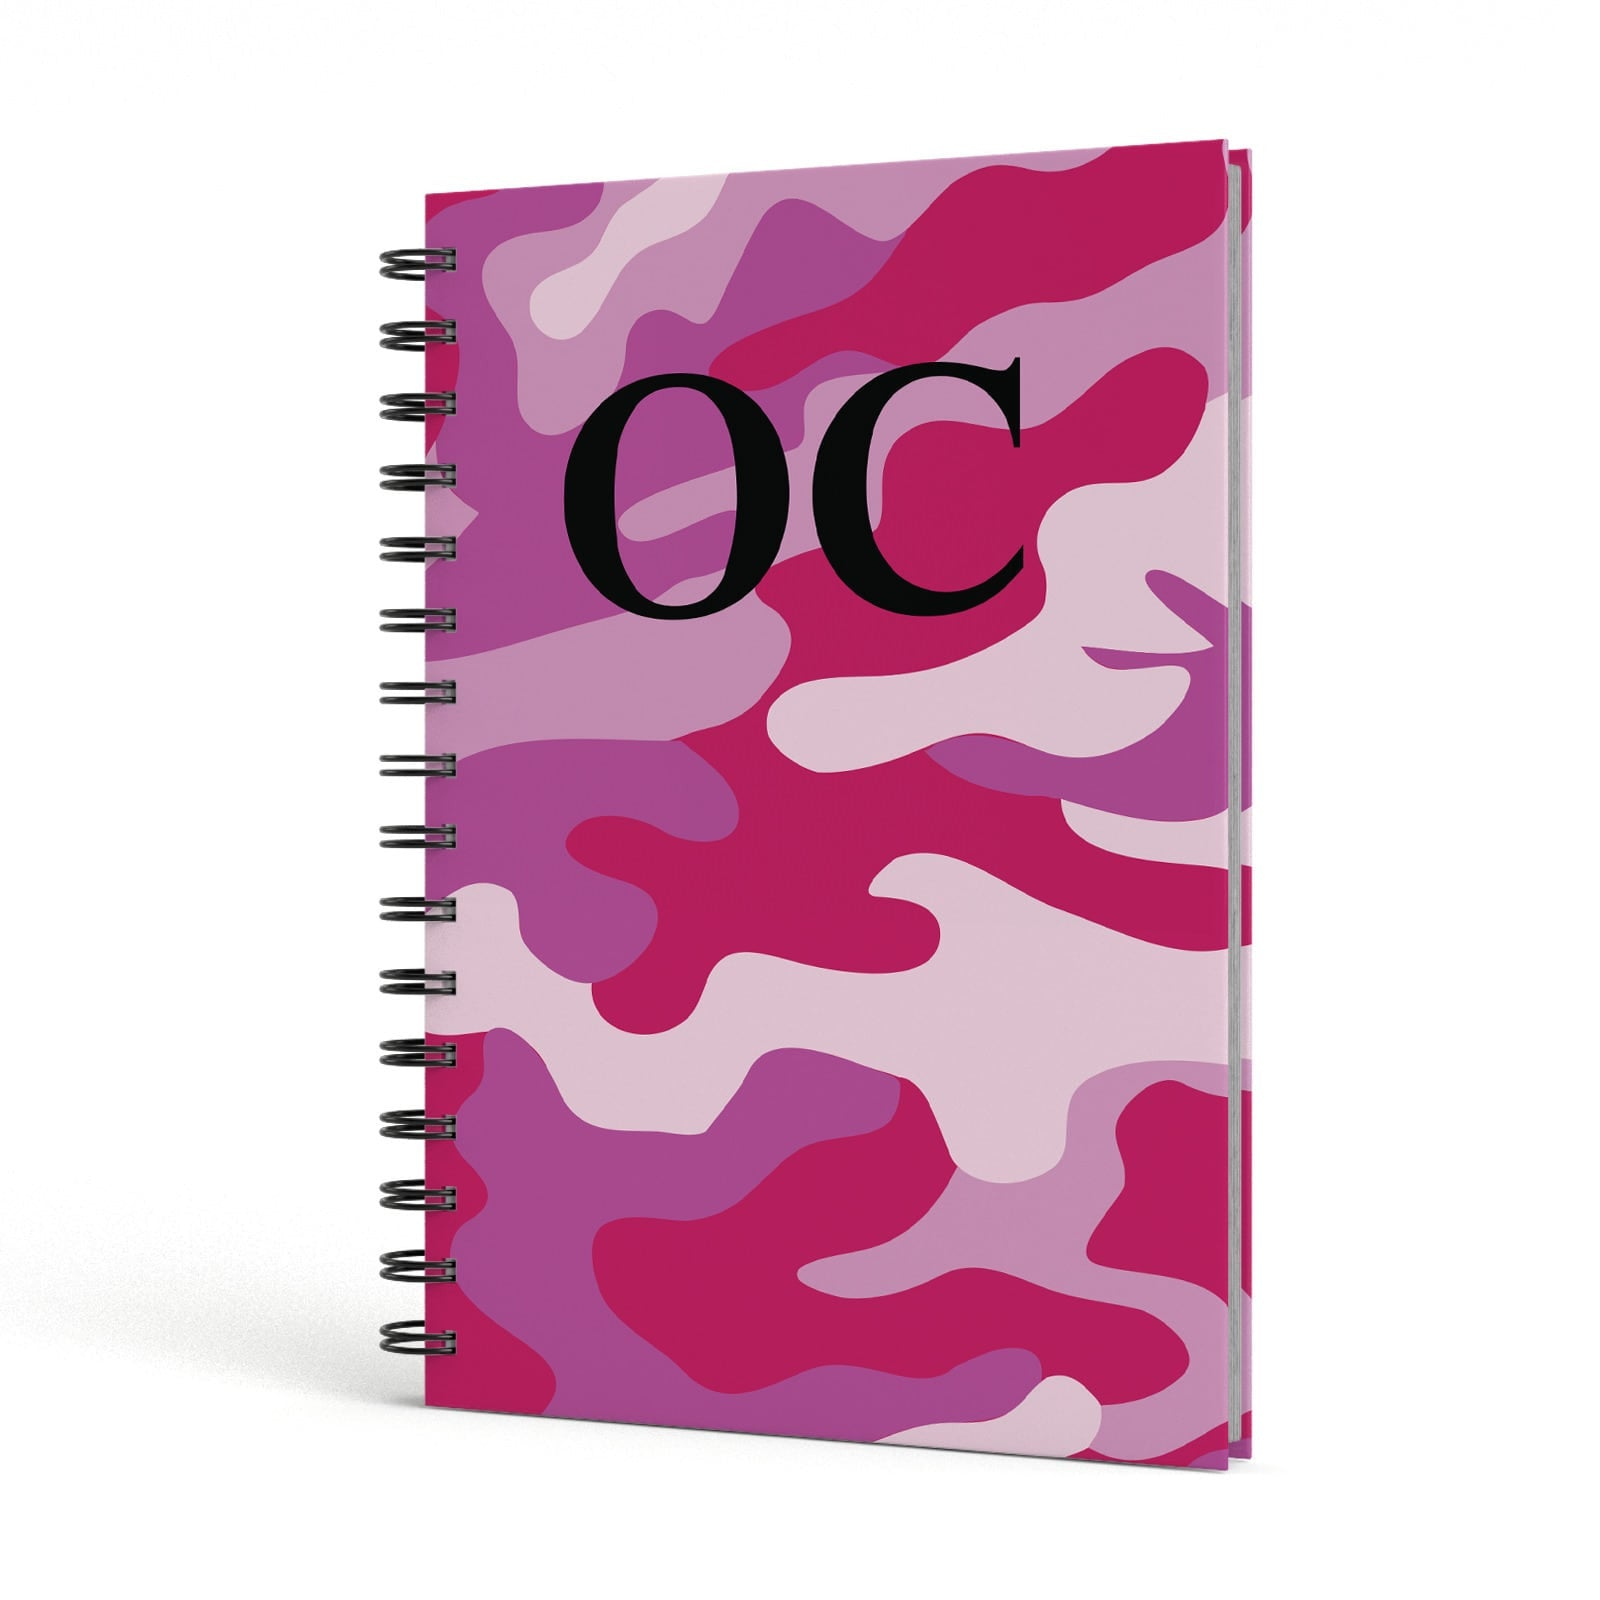 Camouflage Personalised A5 Hardcover Notebook Side View